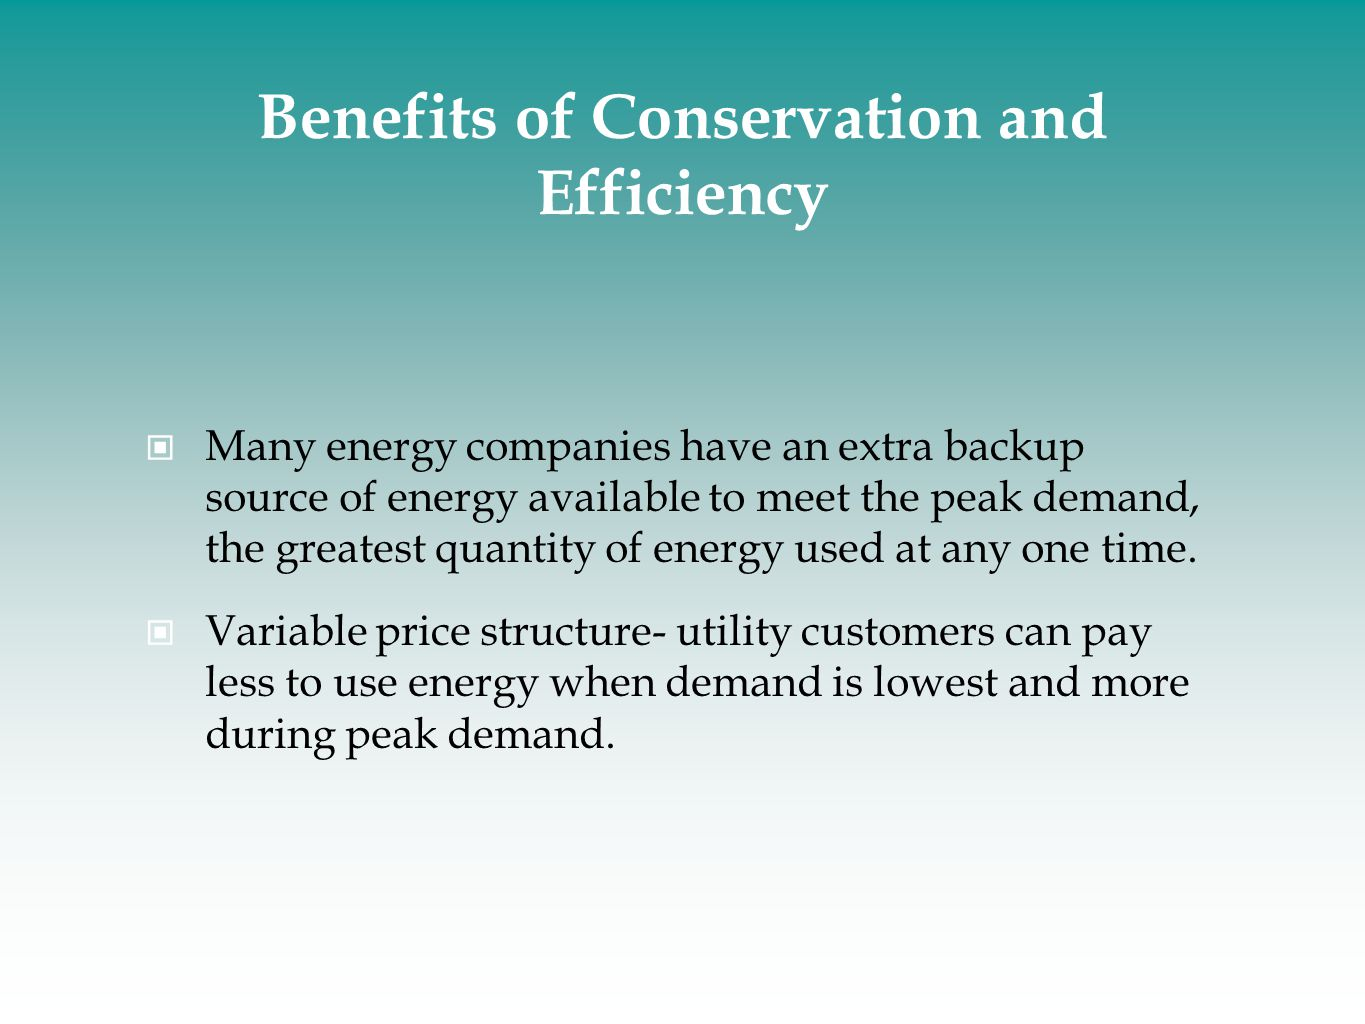 Benefits of Conservation and Efficiency